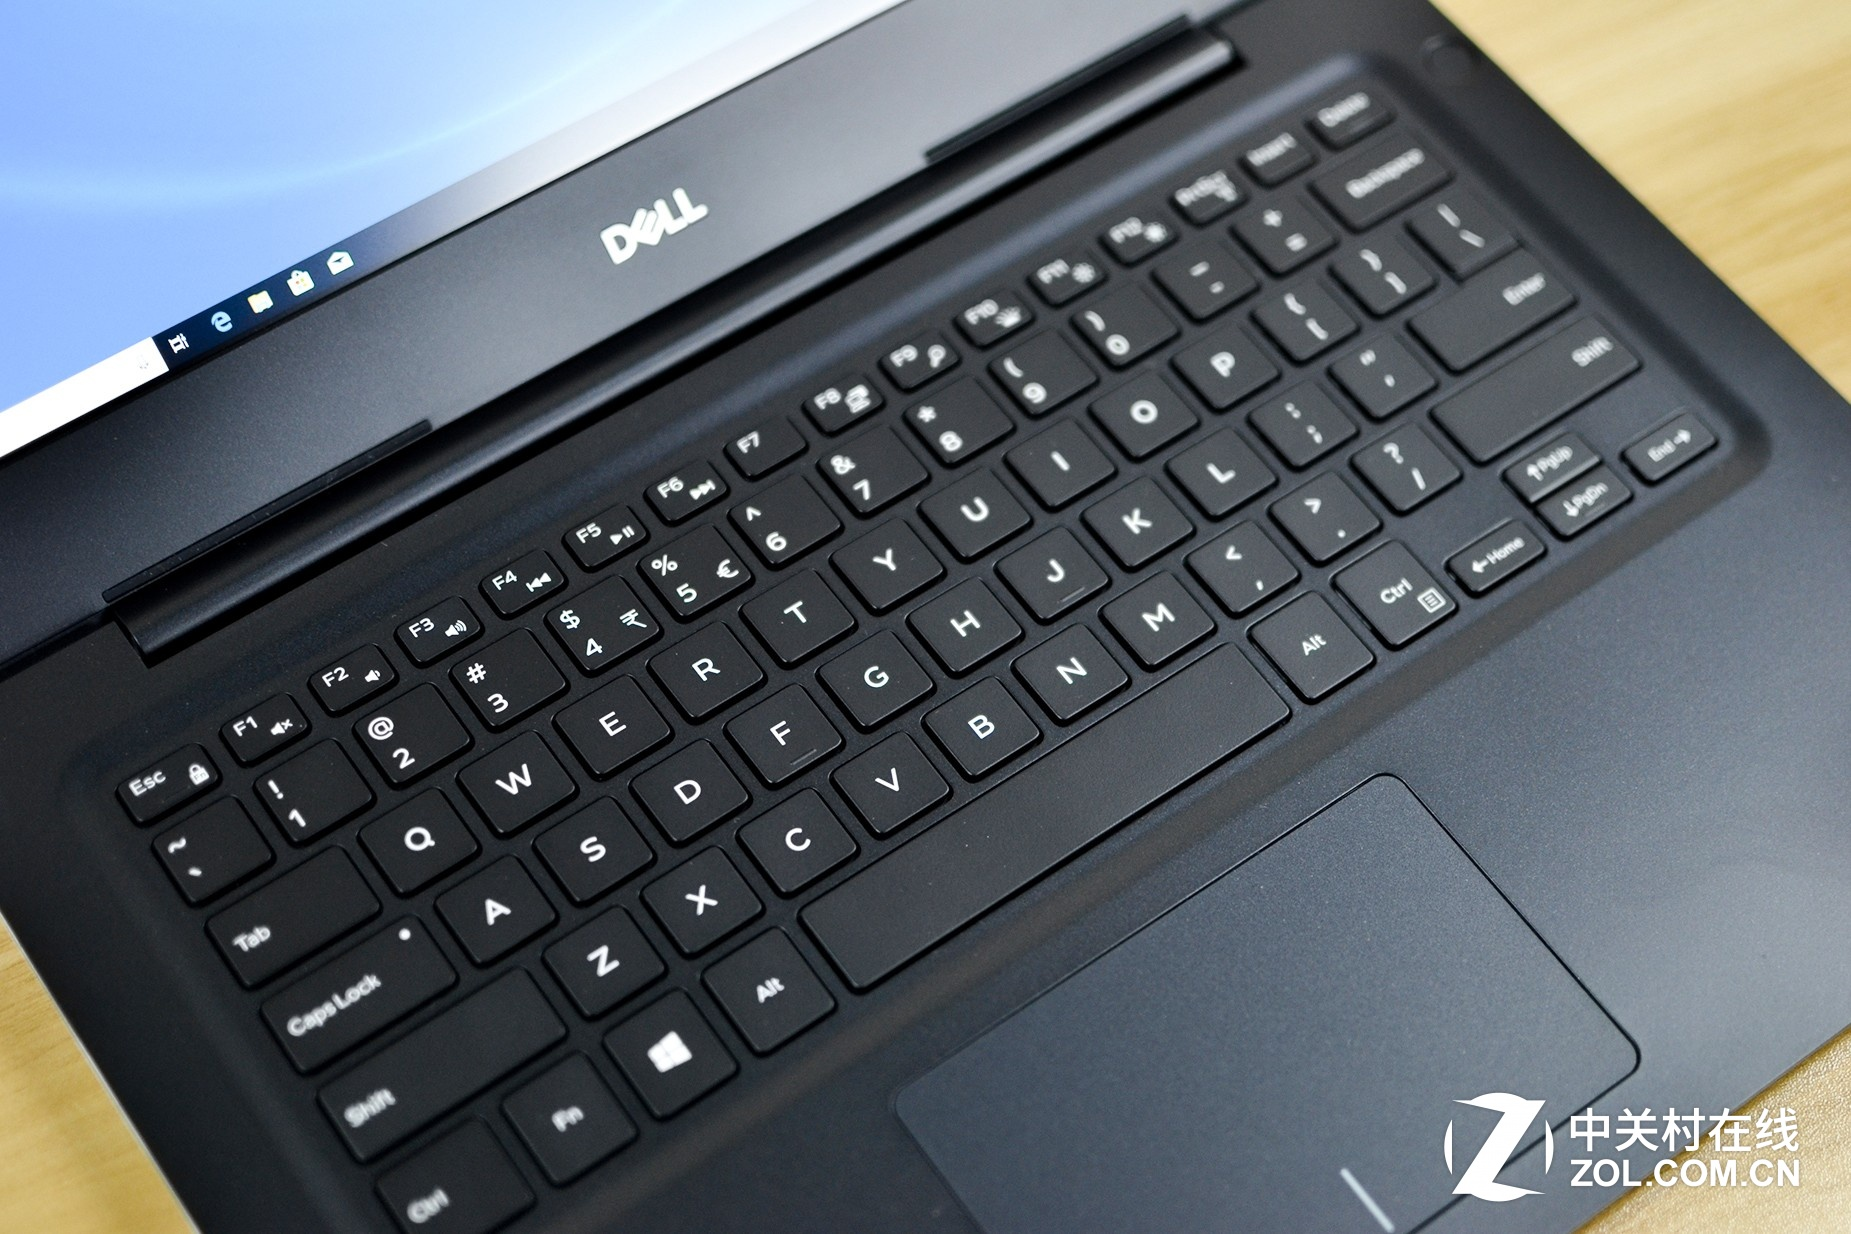 Dell Vostro 14 5481 Review - Laptopmain com